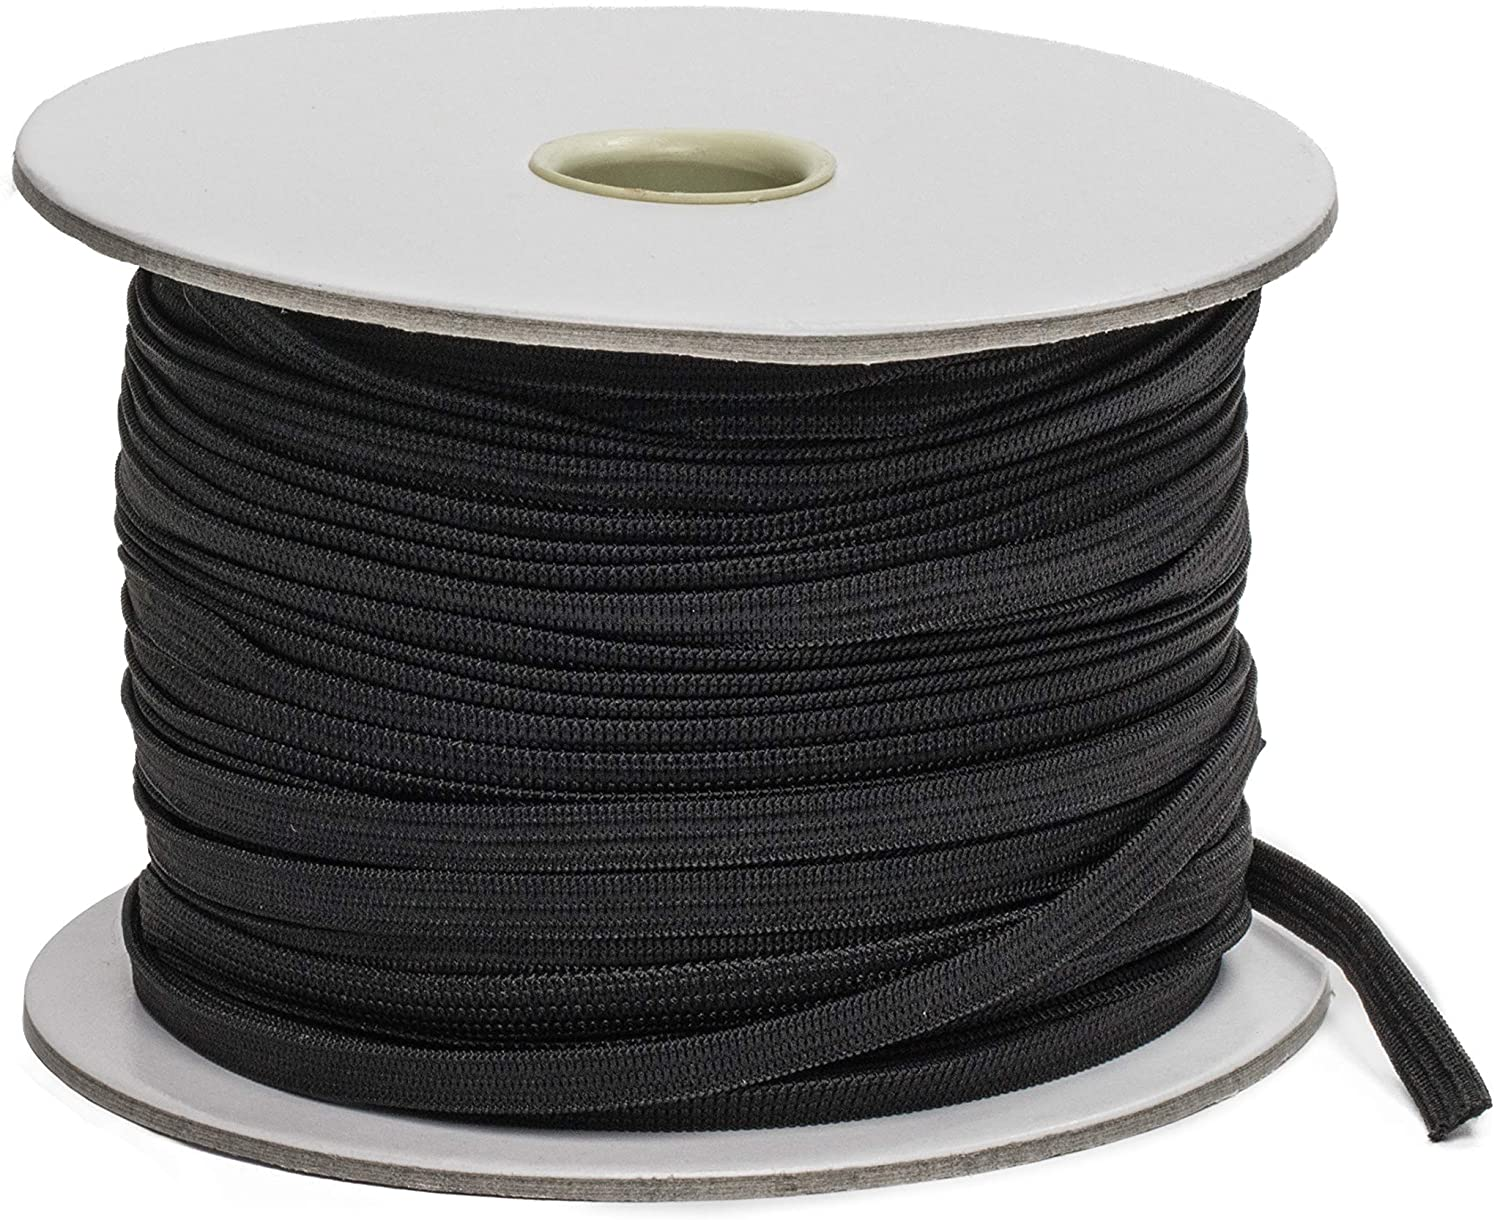 Elastic Strings for Masks - 100 Yards - 6mm 1/4 Inch Knitted Elastic Band for Sewing - Black Elastic Cord (Premium)